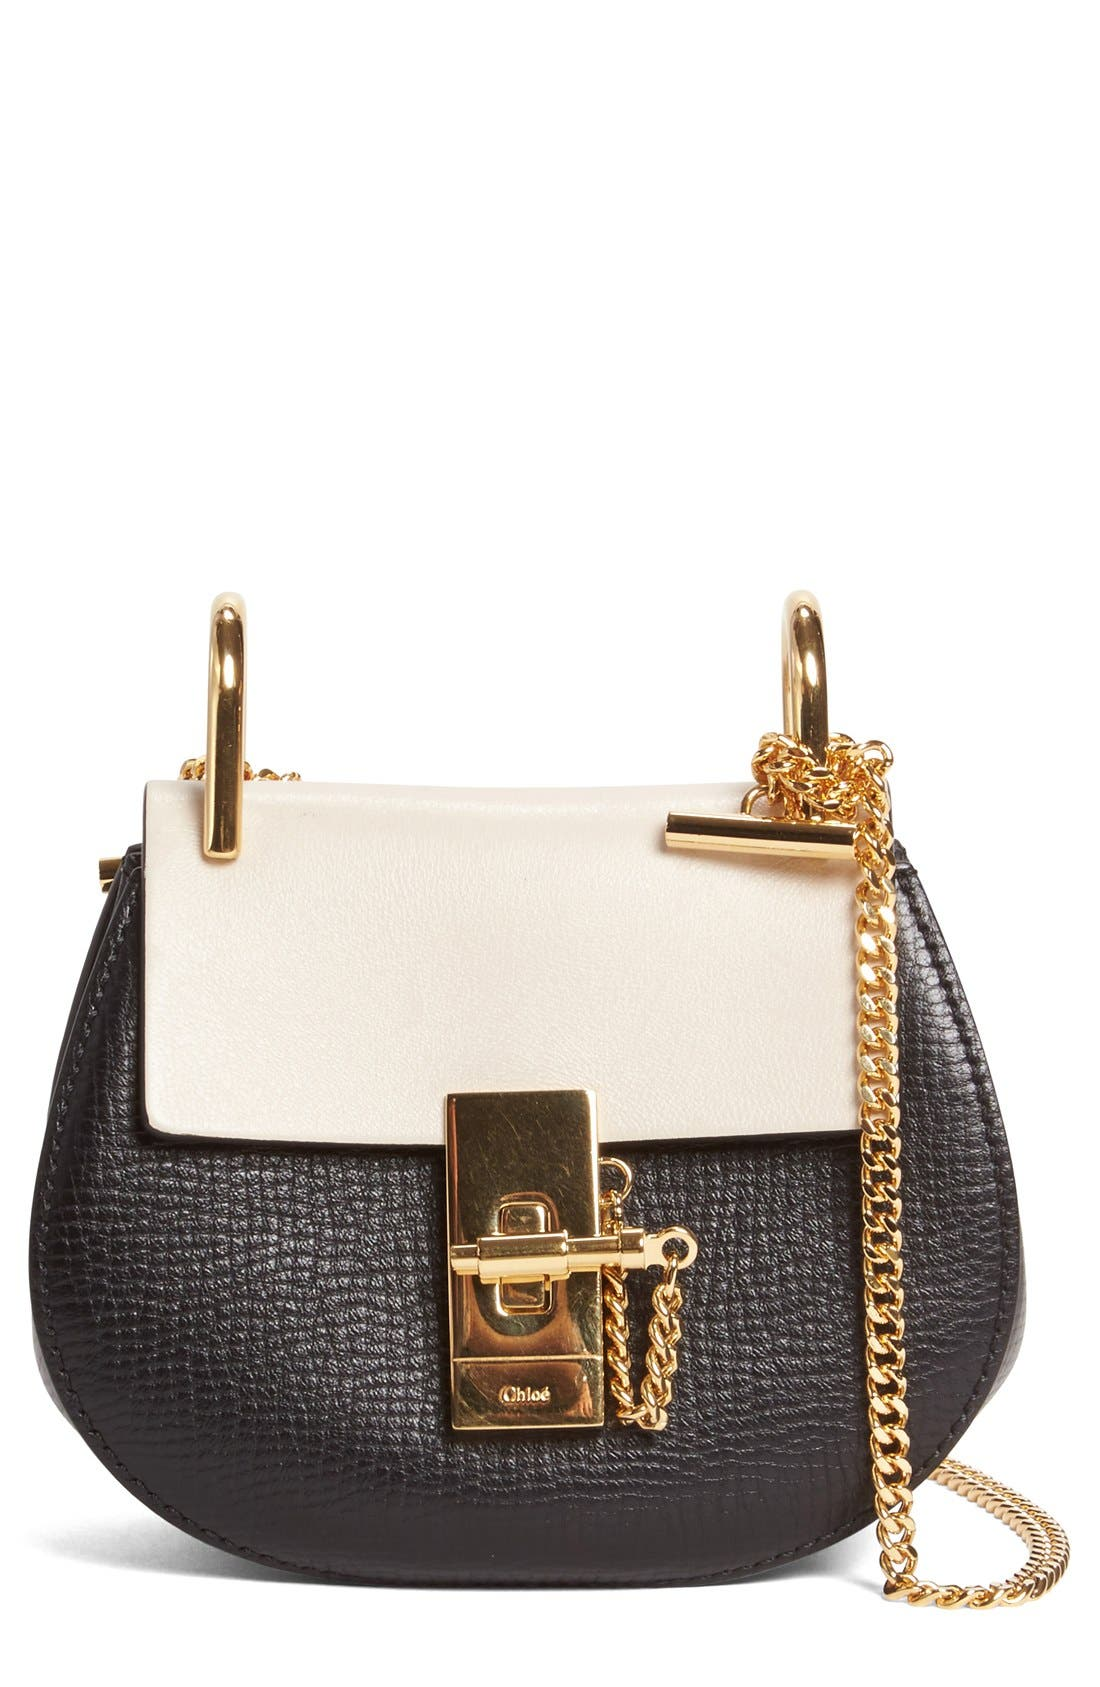 CHLOÉ Nano Drew Calfskin Shoulder Bag